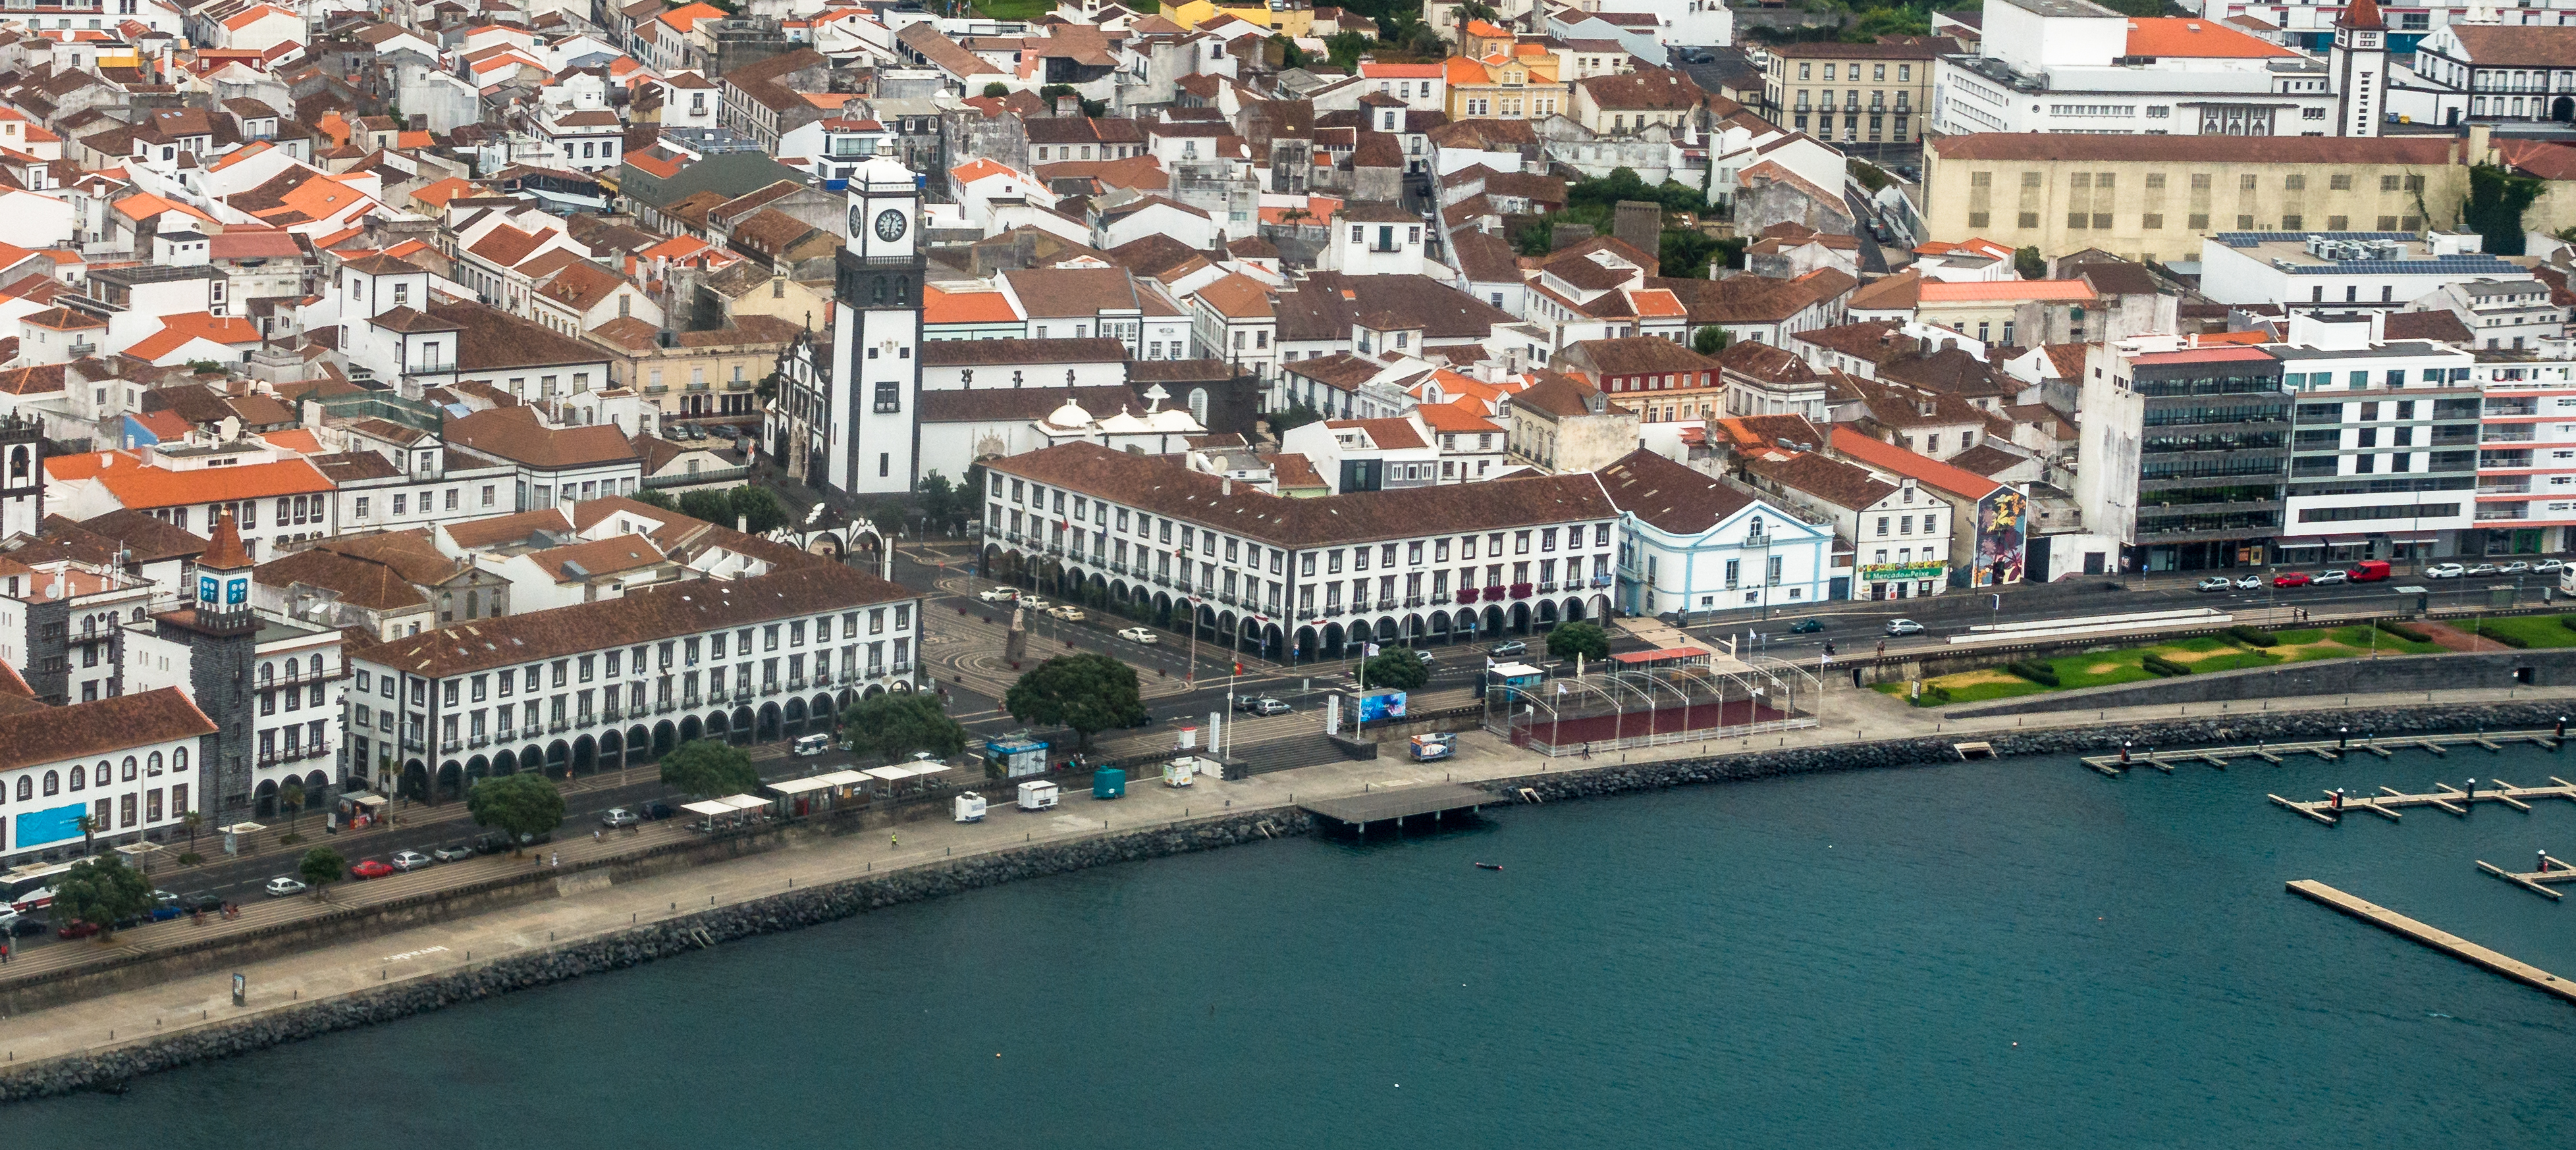 https://upload.wikimedia.org/wikipedia/commons/1/14/Ilha_de_S%C3%A3o_Miguel_DSC00659_%2836586155410%29_%28cropped%29.jpg